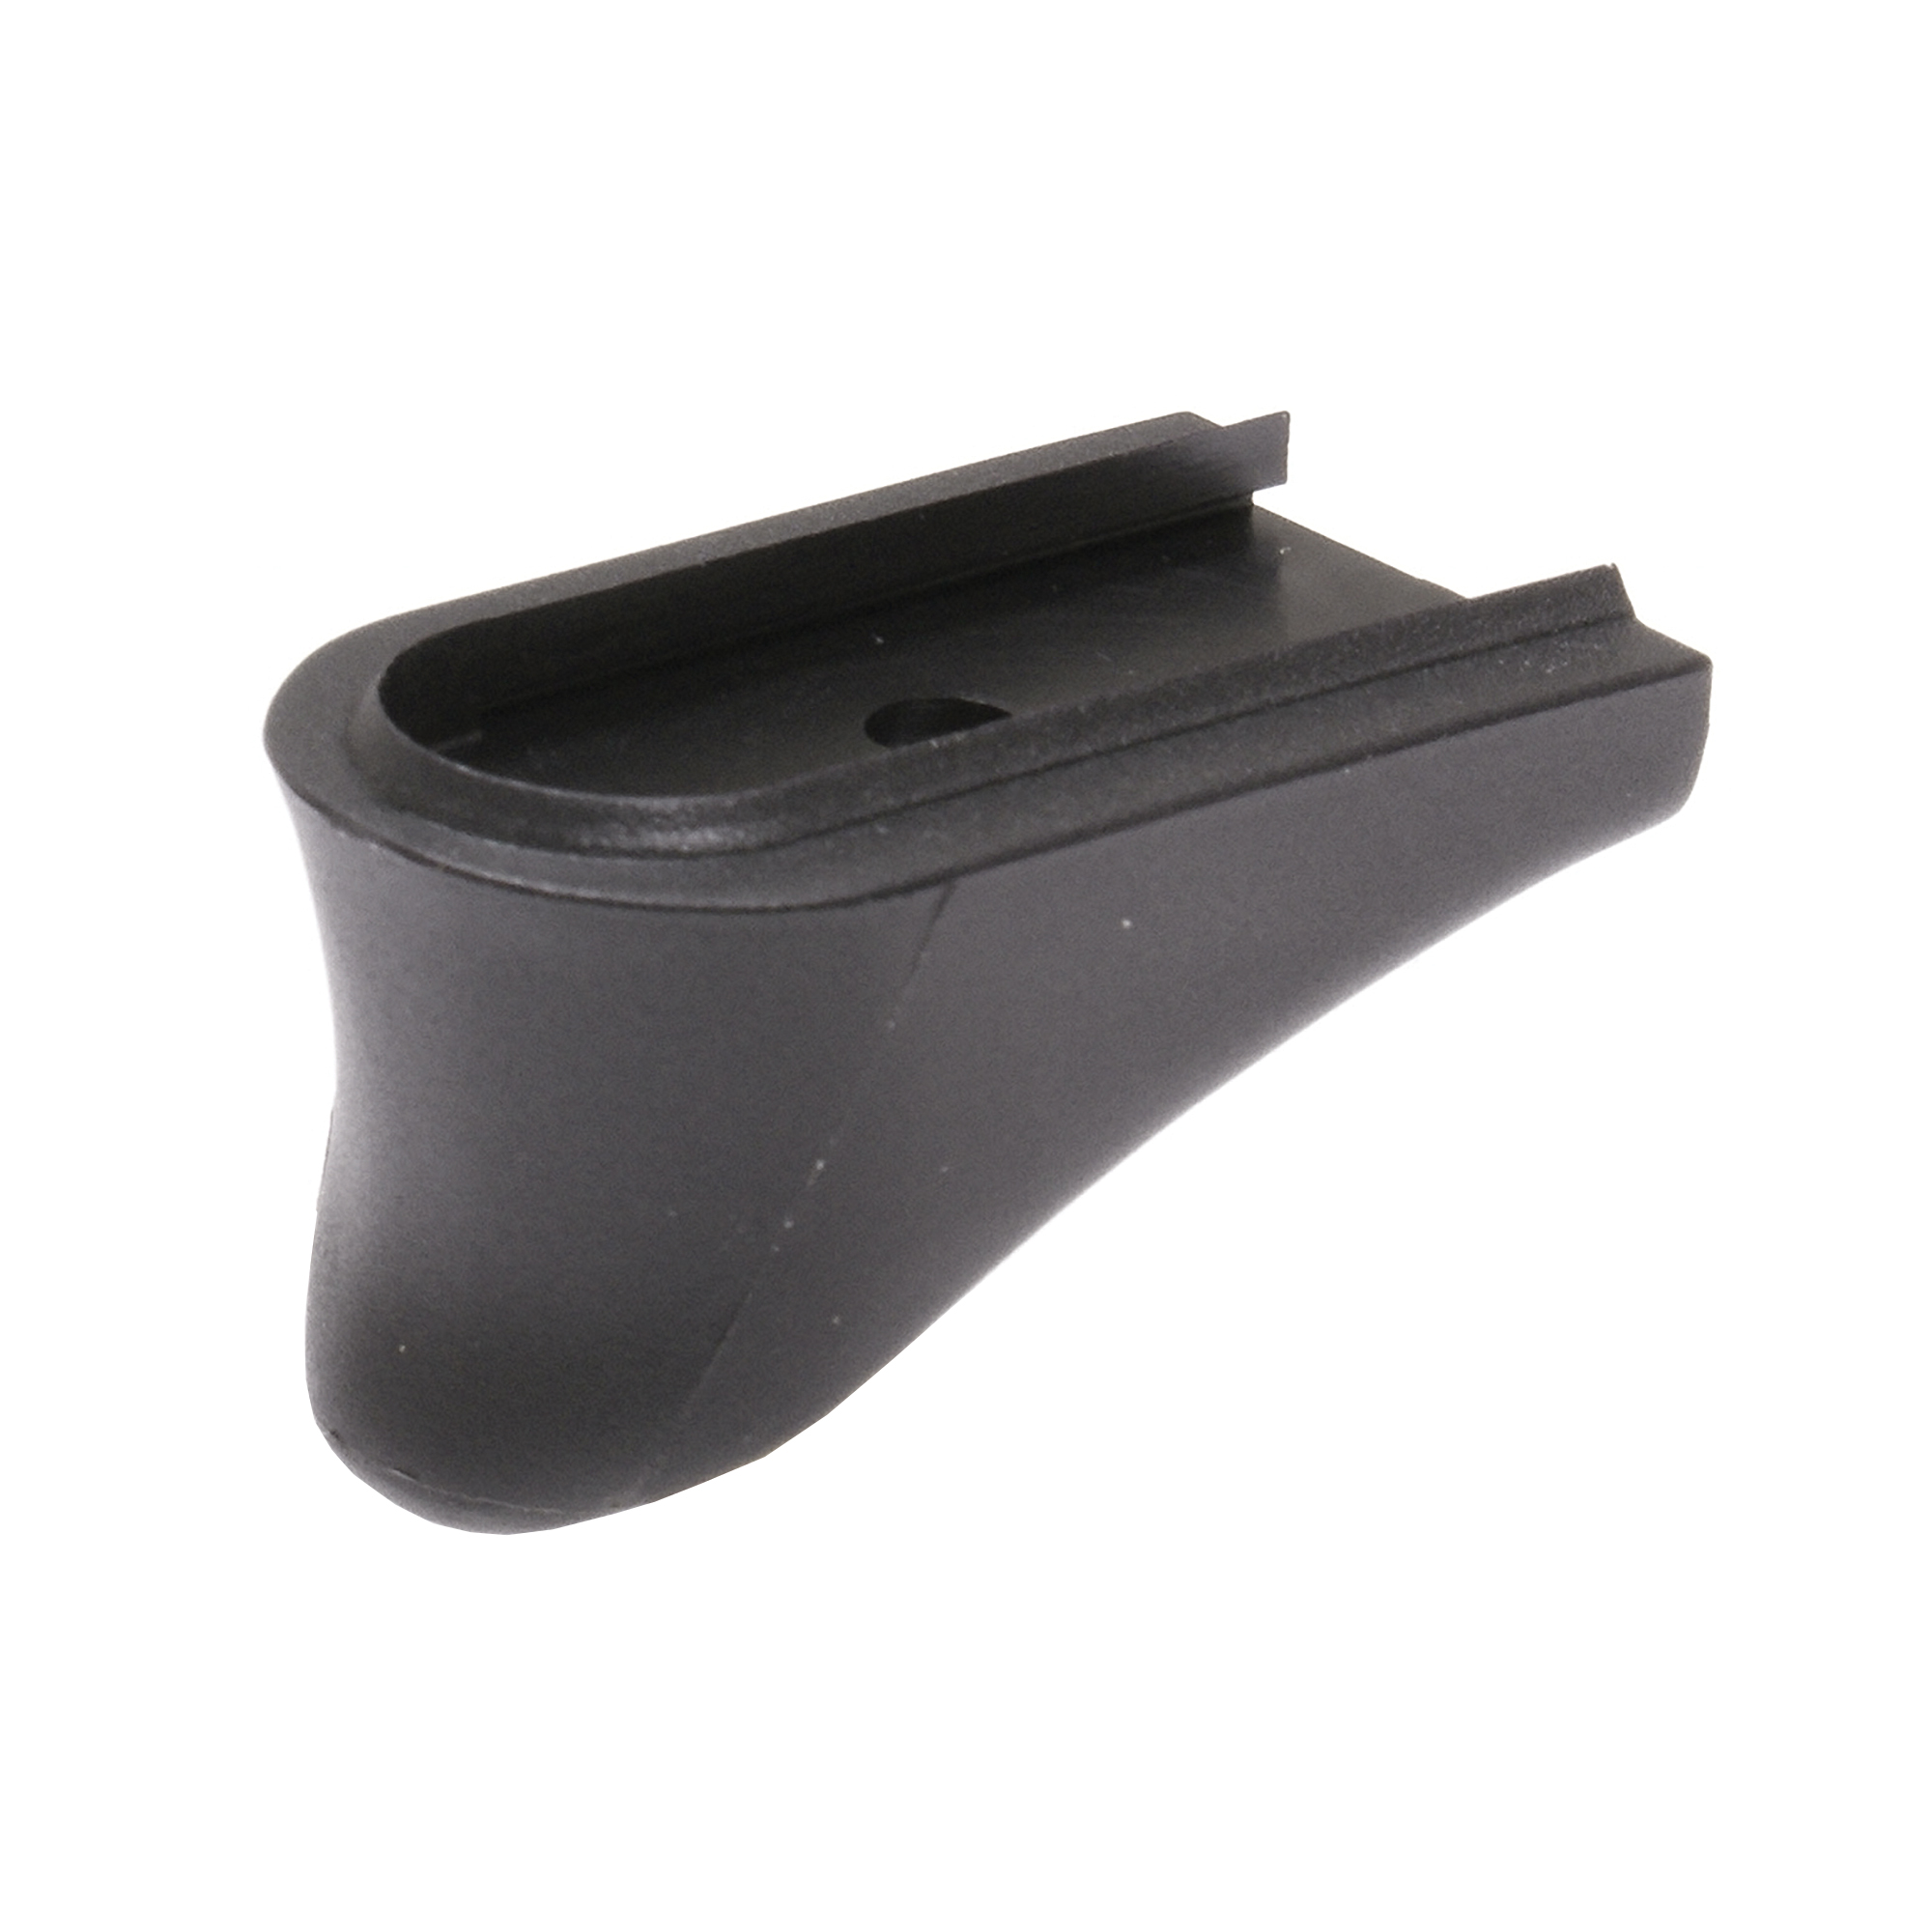 """This unit replaces the magazine base plate on the Springfield XDS/XDE/XDSMOD2 in 45ACP"""" 40 S&W and 9mm single stack magazines. This extension does not alter the capacity of the magazine. It adds approximately 5/8th inch additional gripping surface."""